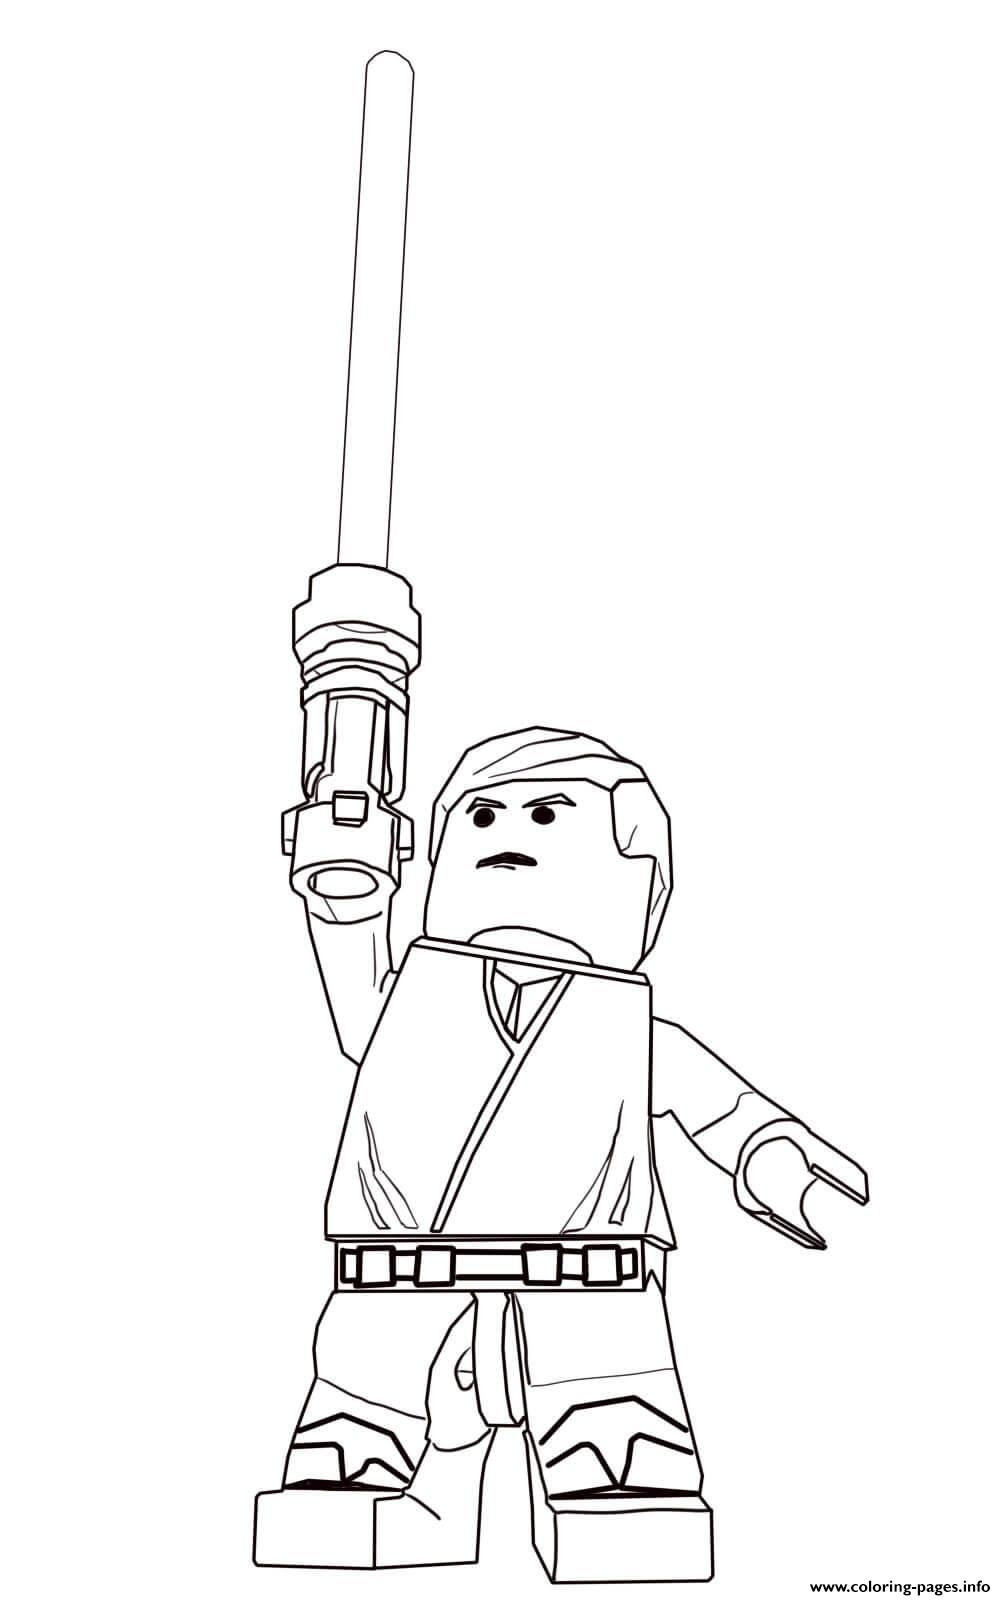 Print lego star wars luke skywalker coloring pages Lego